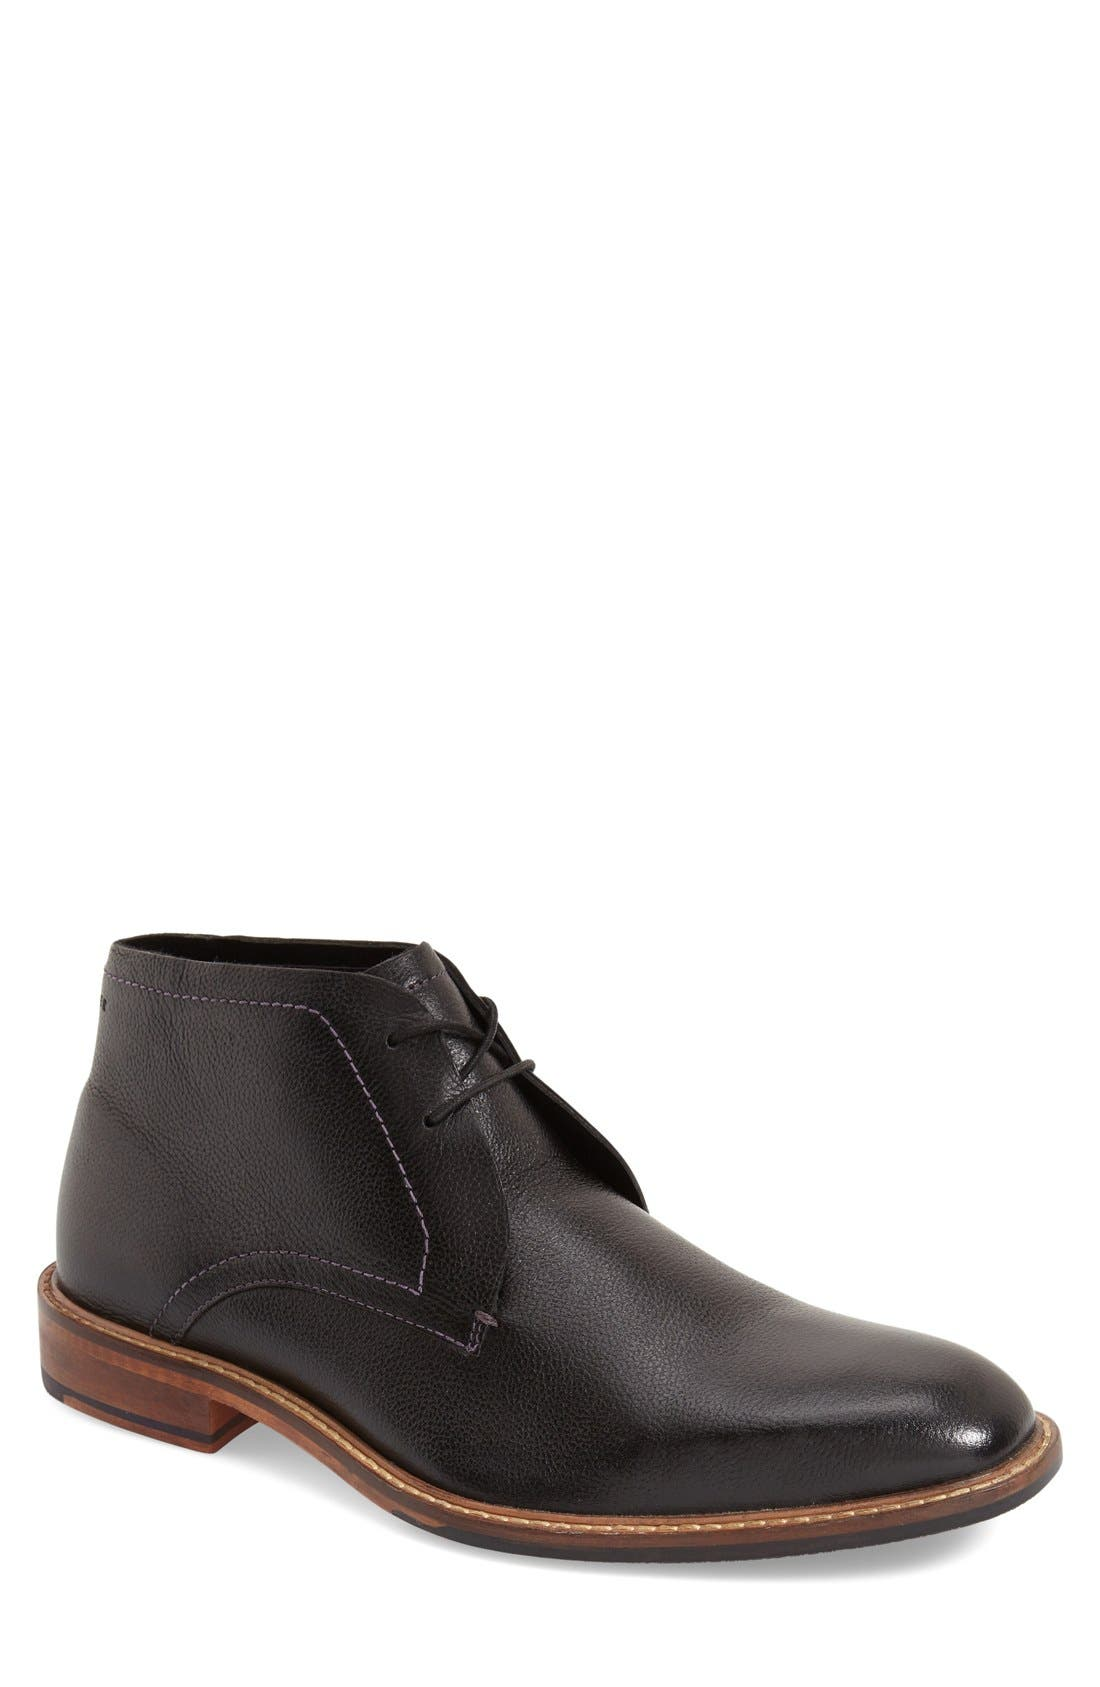 'Torsdi 4' Chukka Boot,                             Main thumbnail 1, color,                             Black Leather